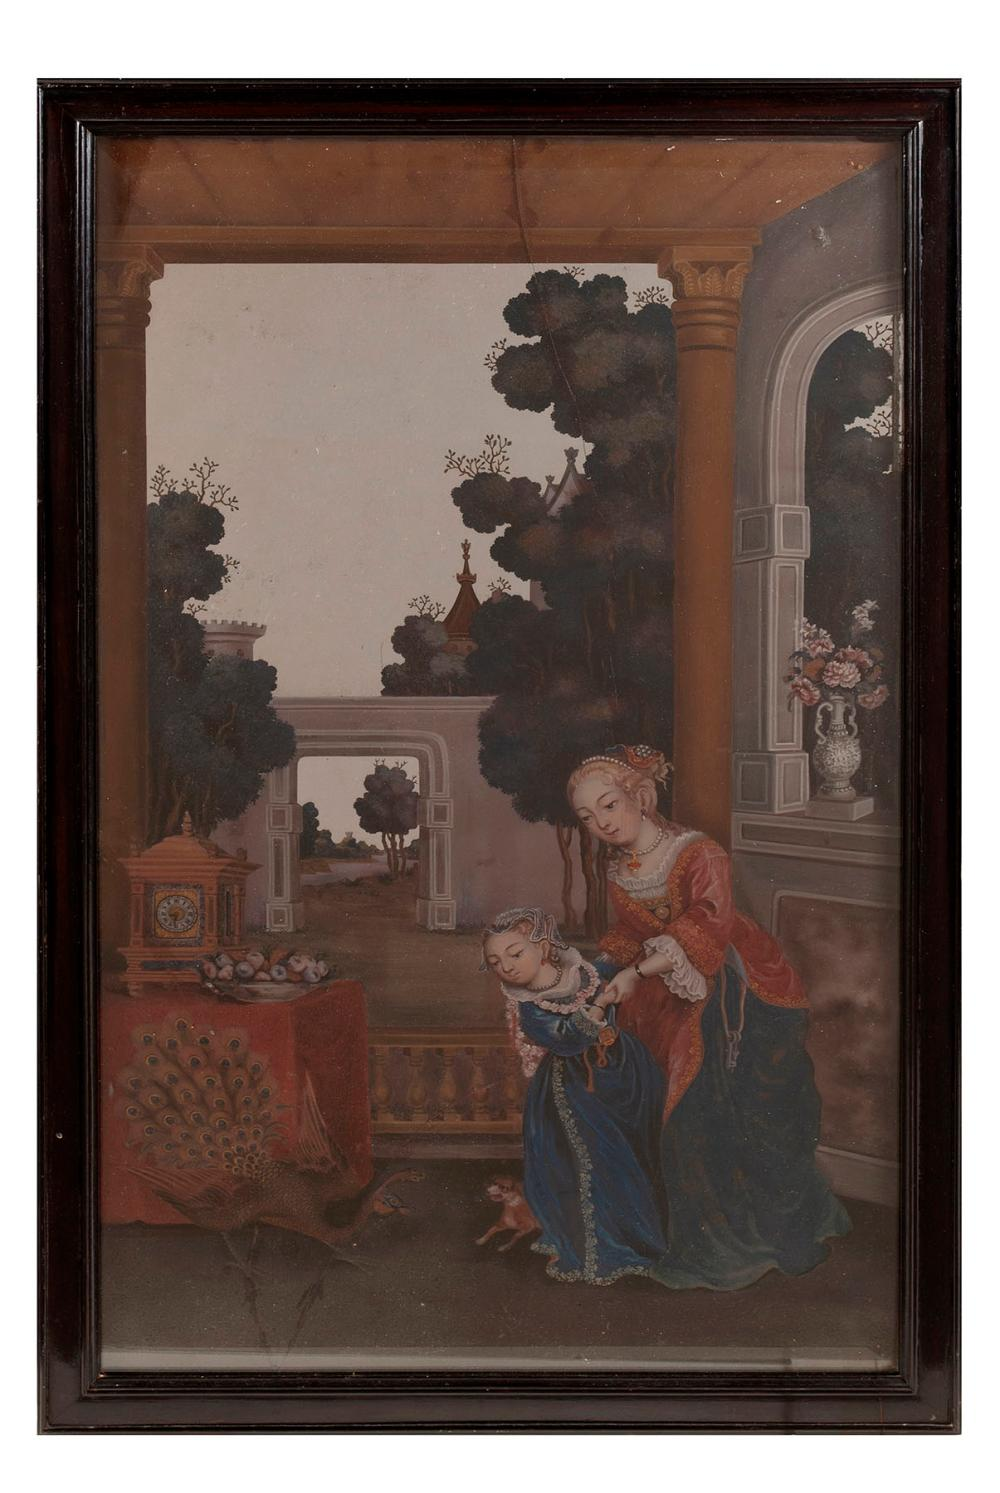 A QING ERA CHINESE EXPORT REVERSE MIRROR PAINTING